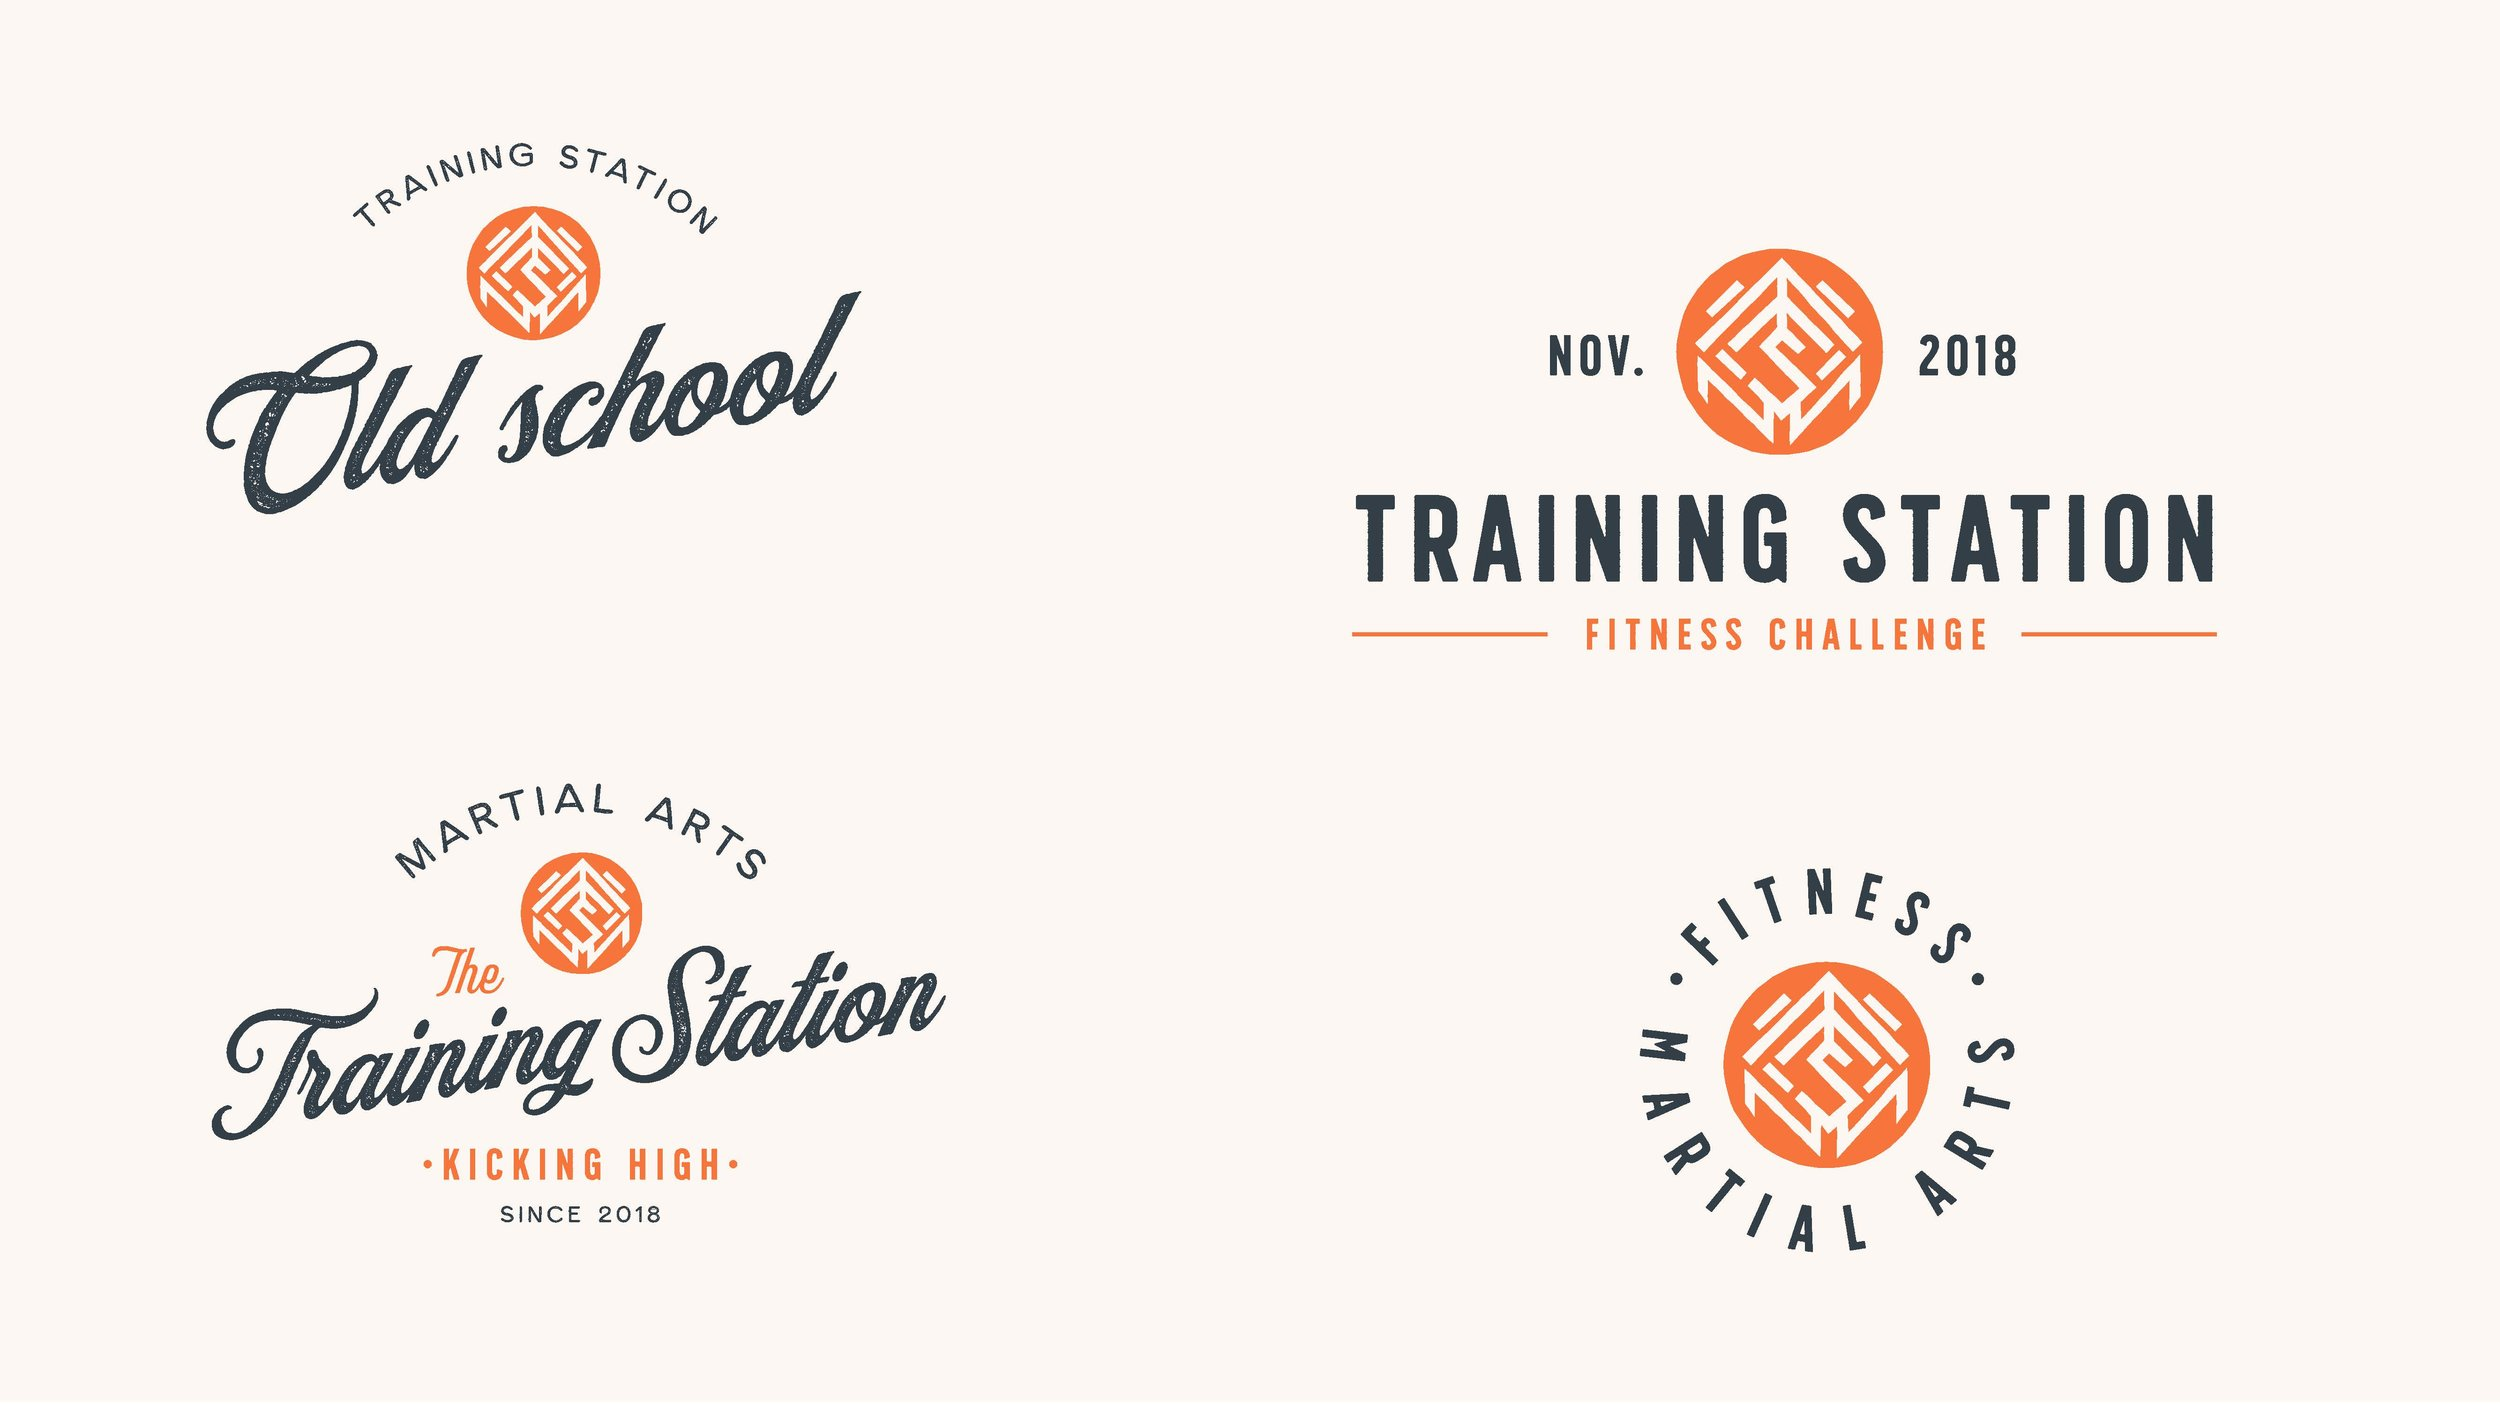 training station_guidelines_Page_2.jpg